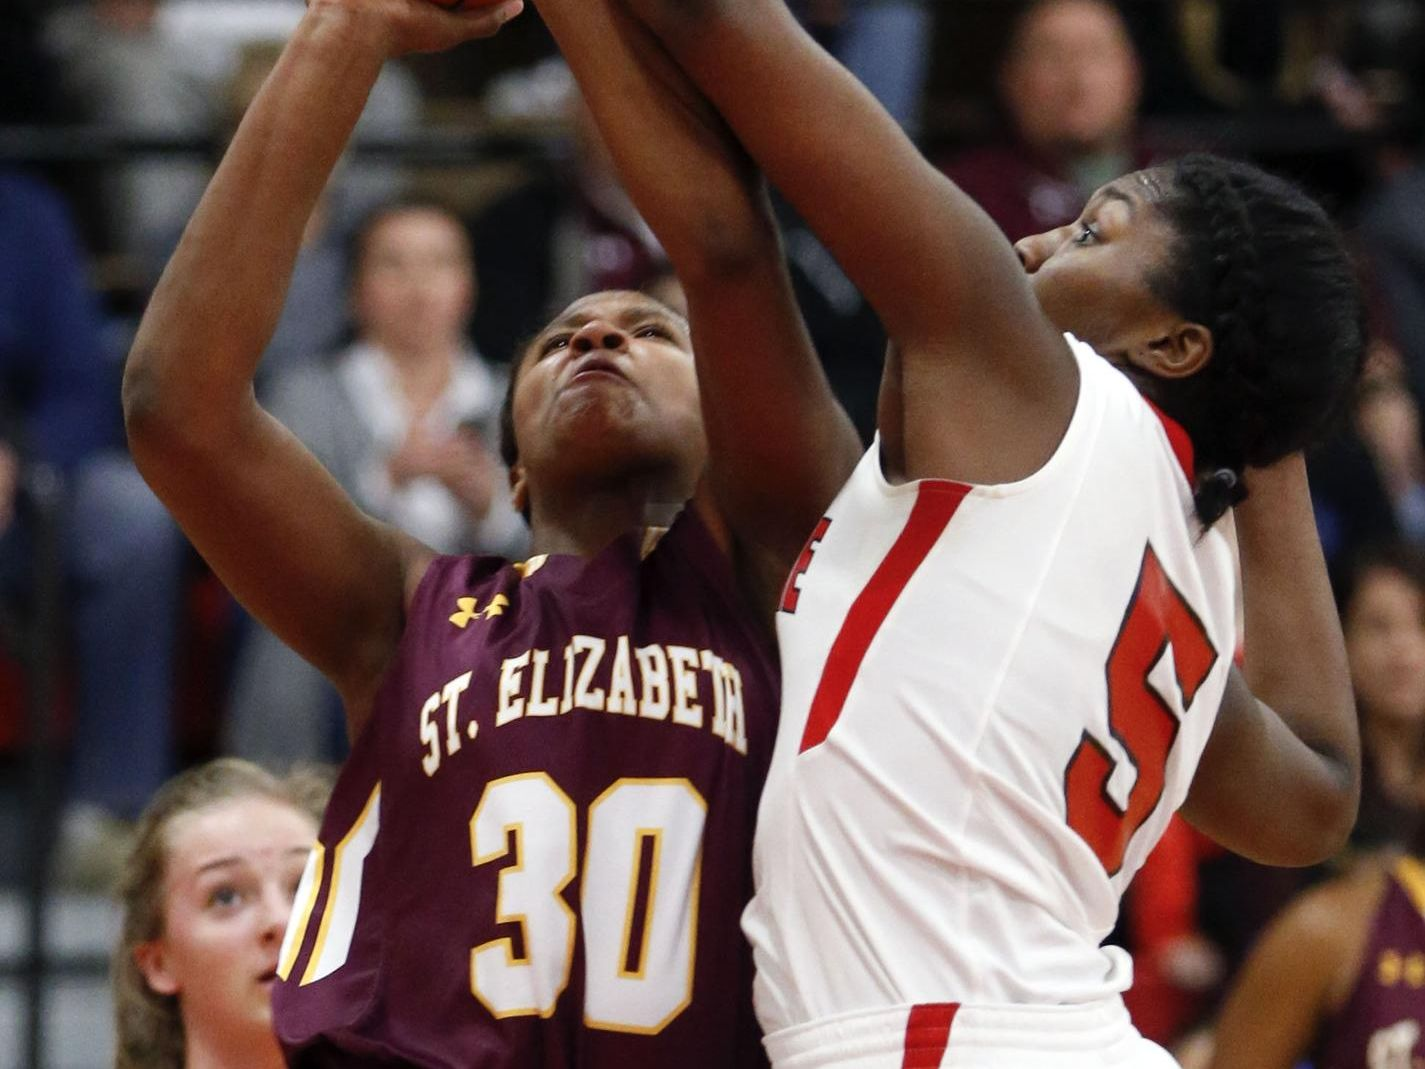 St. Elizabeth's Alanna Speaks (left) tries to shoot past the defense of Ursuline's Kay Wulah in Ursuline's 58-43 home win Wednesday.